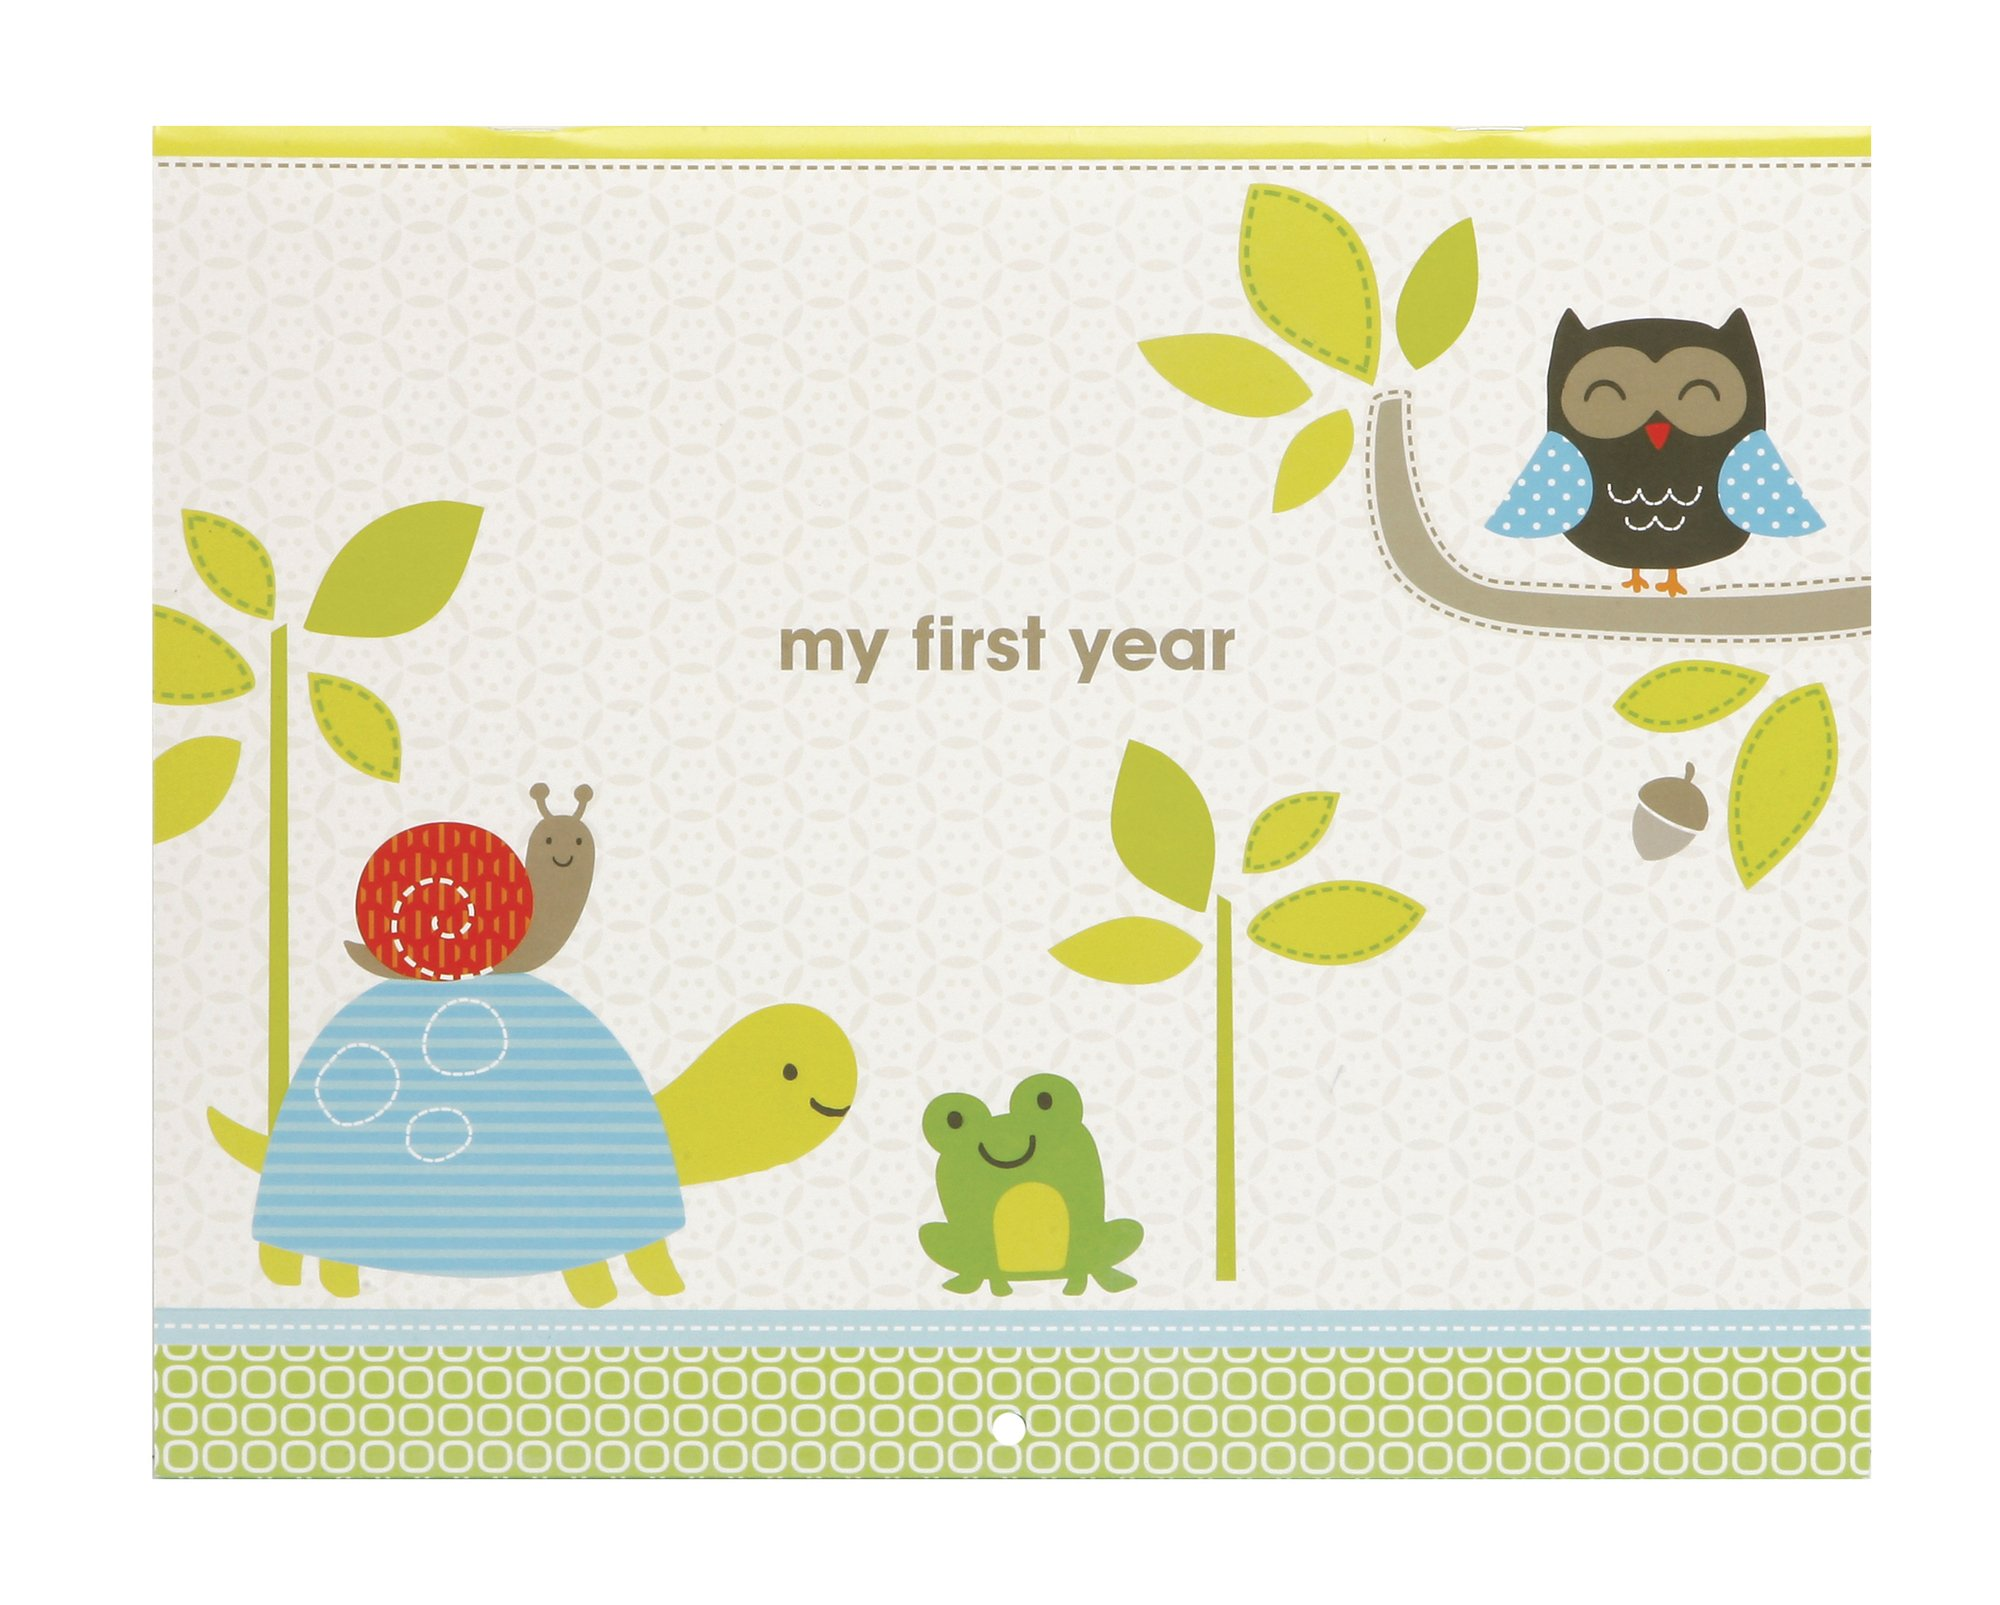 Carter's Green Woodland Animals First Year Calendar for Babies, 11'' L x 18'' H, Includes Sticker Sheet